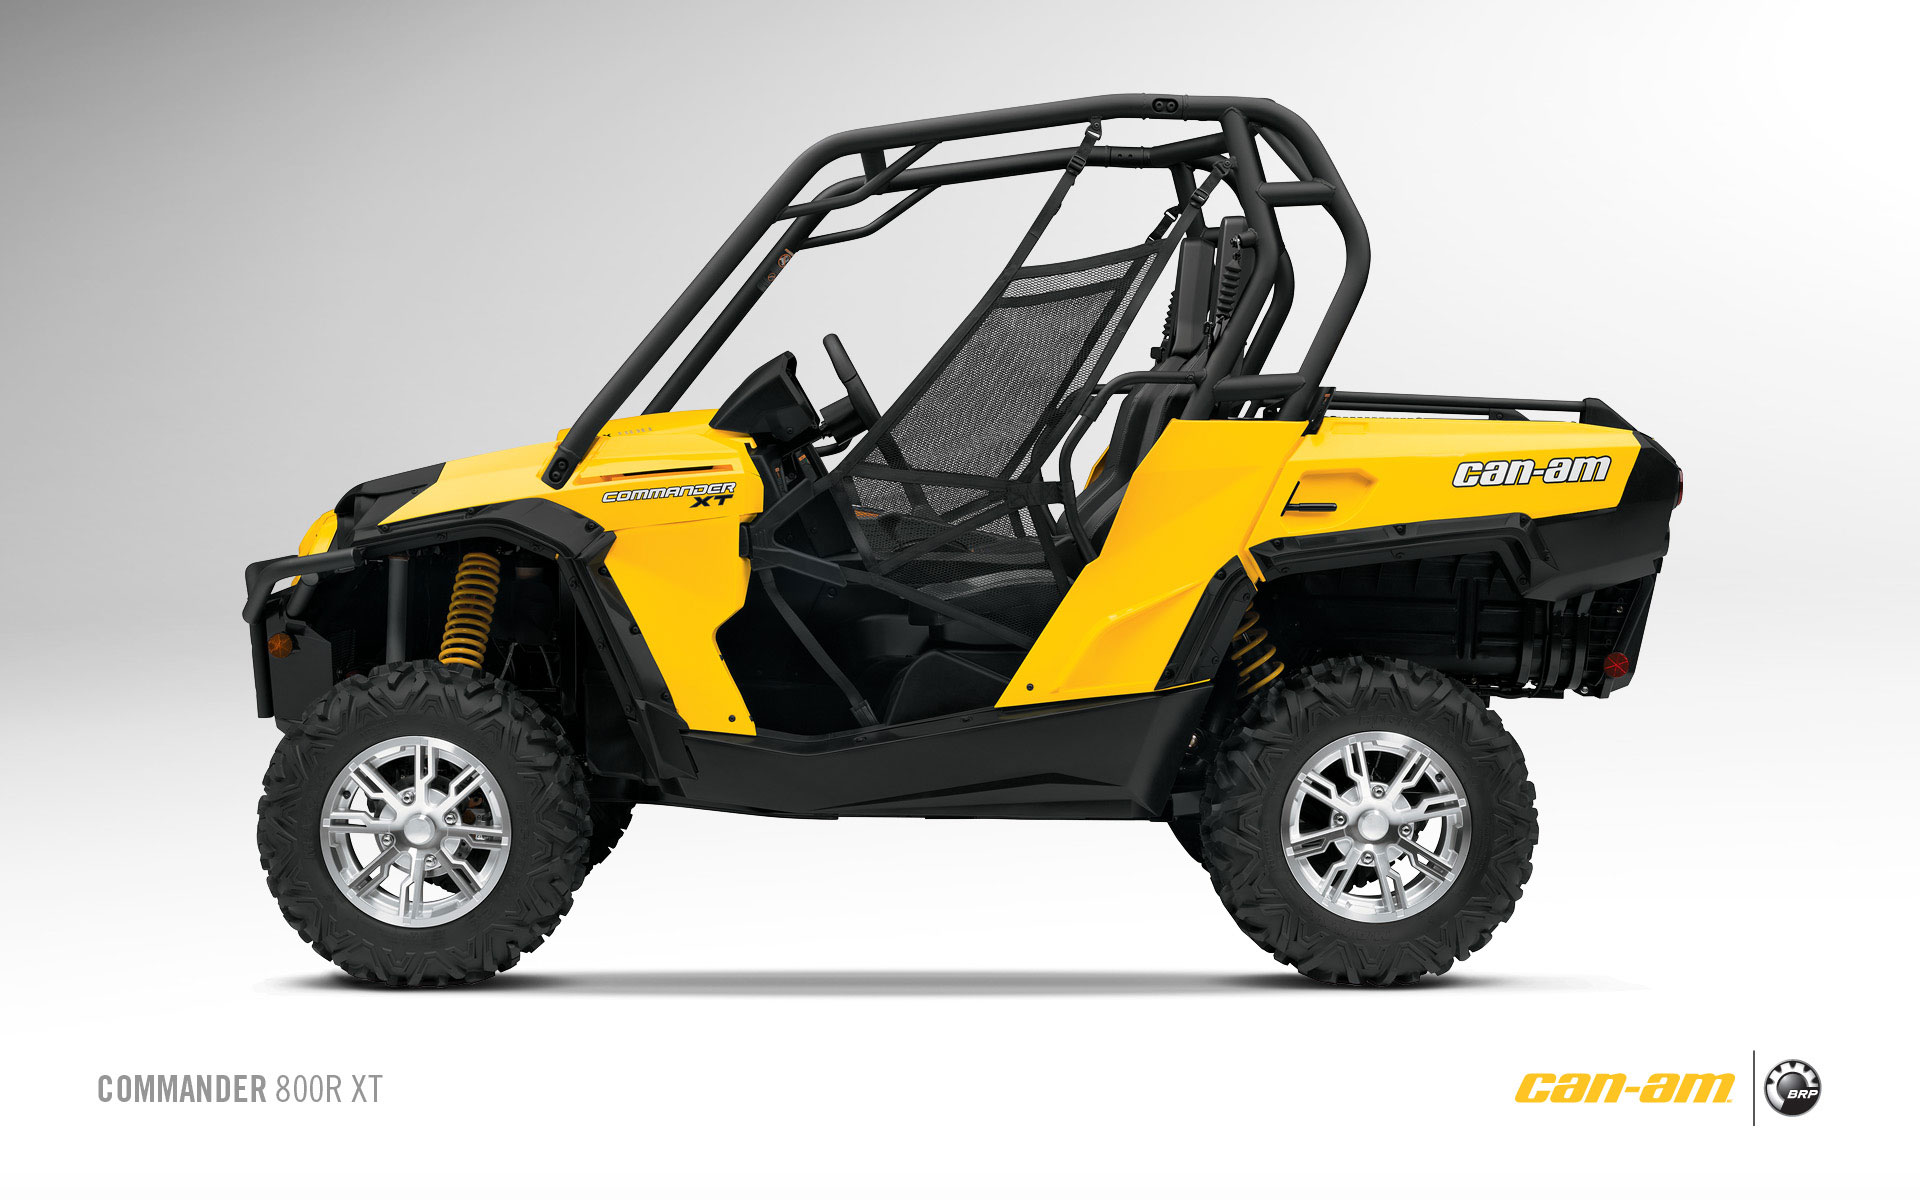 CAN-AM/ BRP Commander 800R XT specs - 2011, 2012 - autoevolution